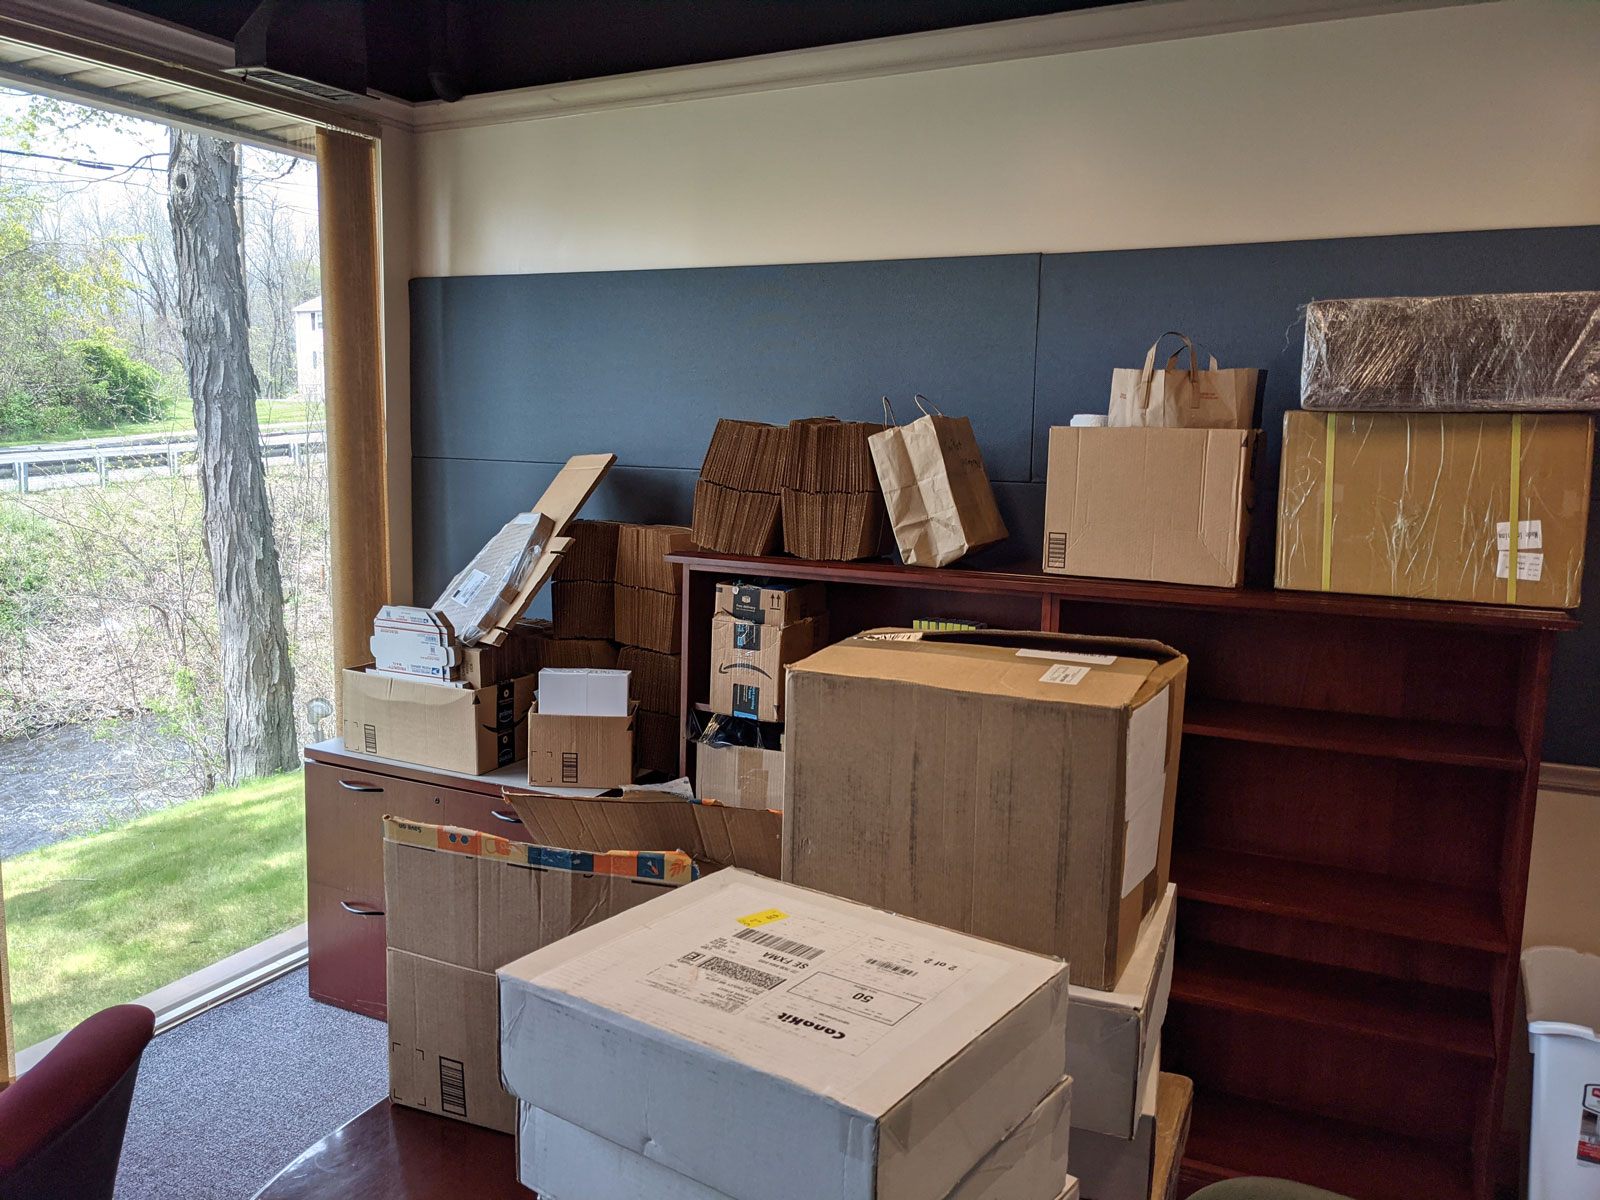 Photo of TinyPilot's office on move-in day